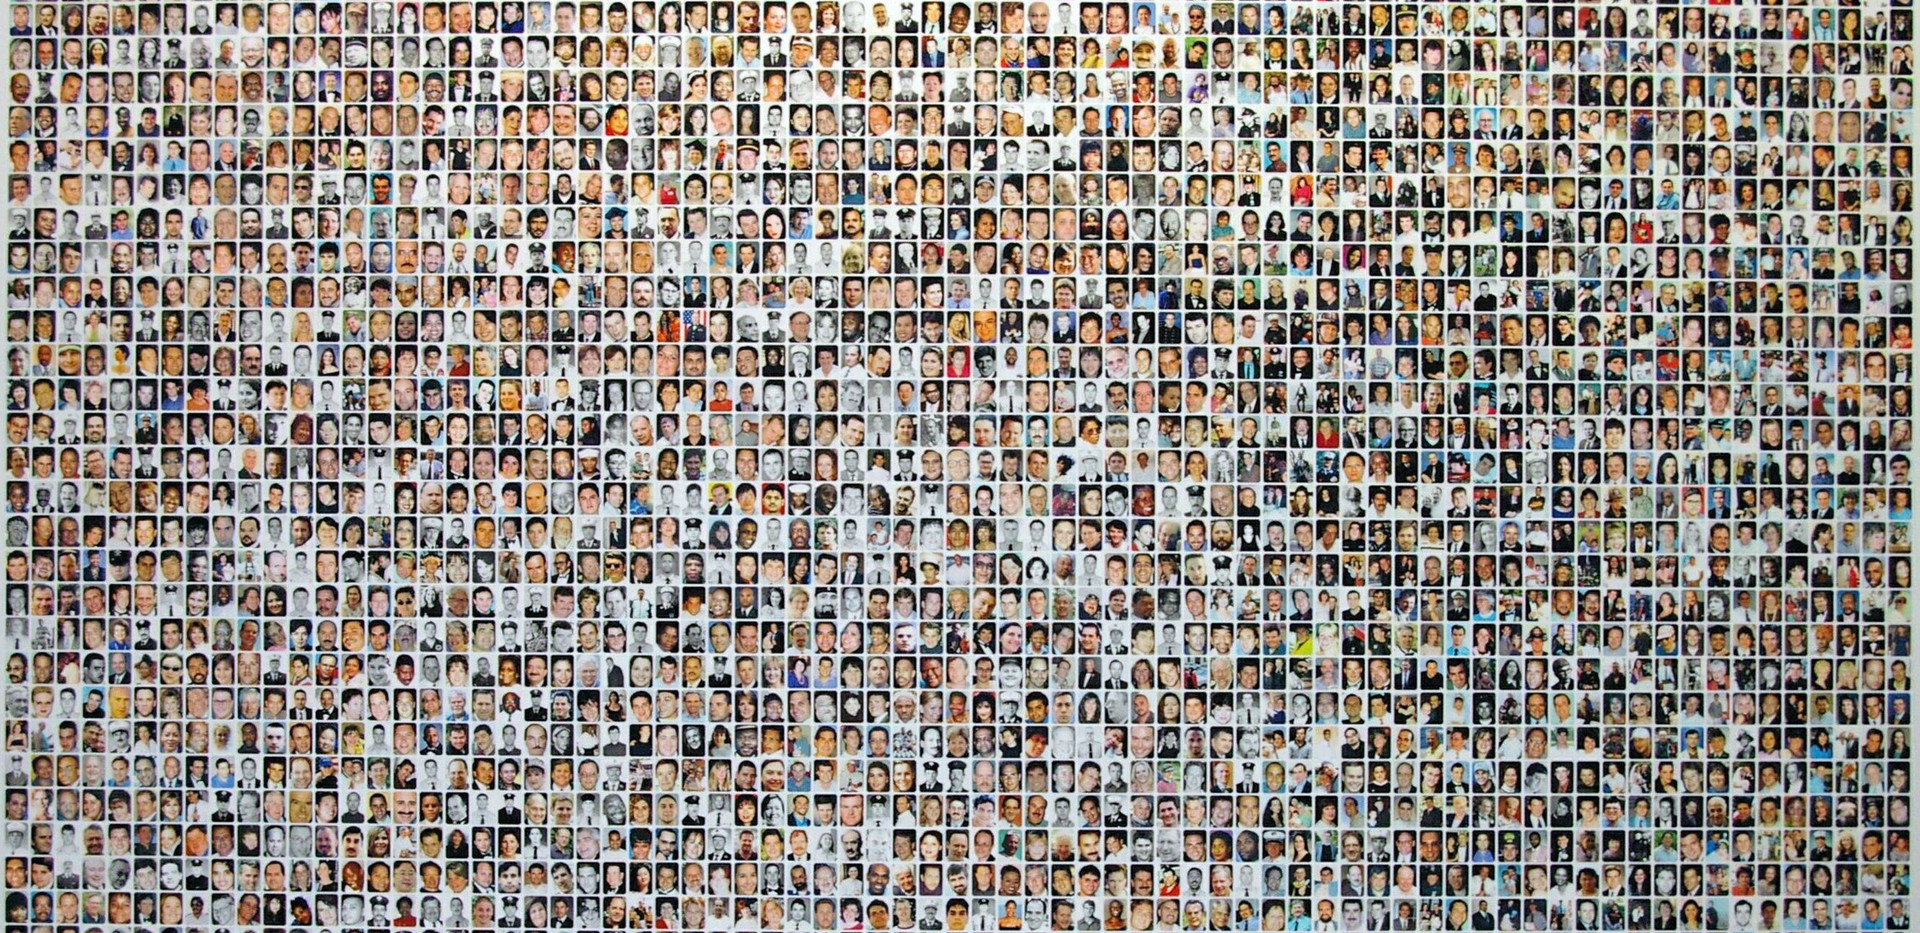 The Faces of the September 11th Victims